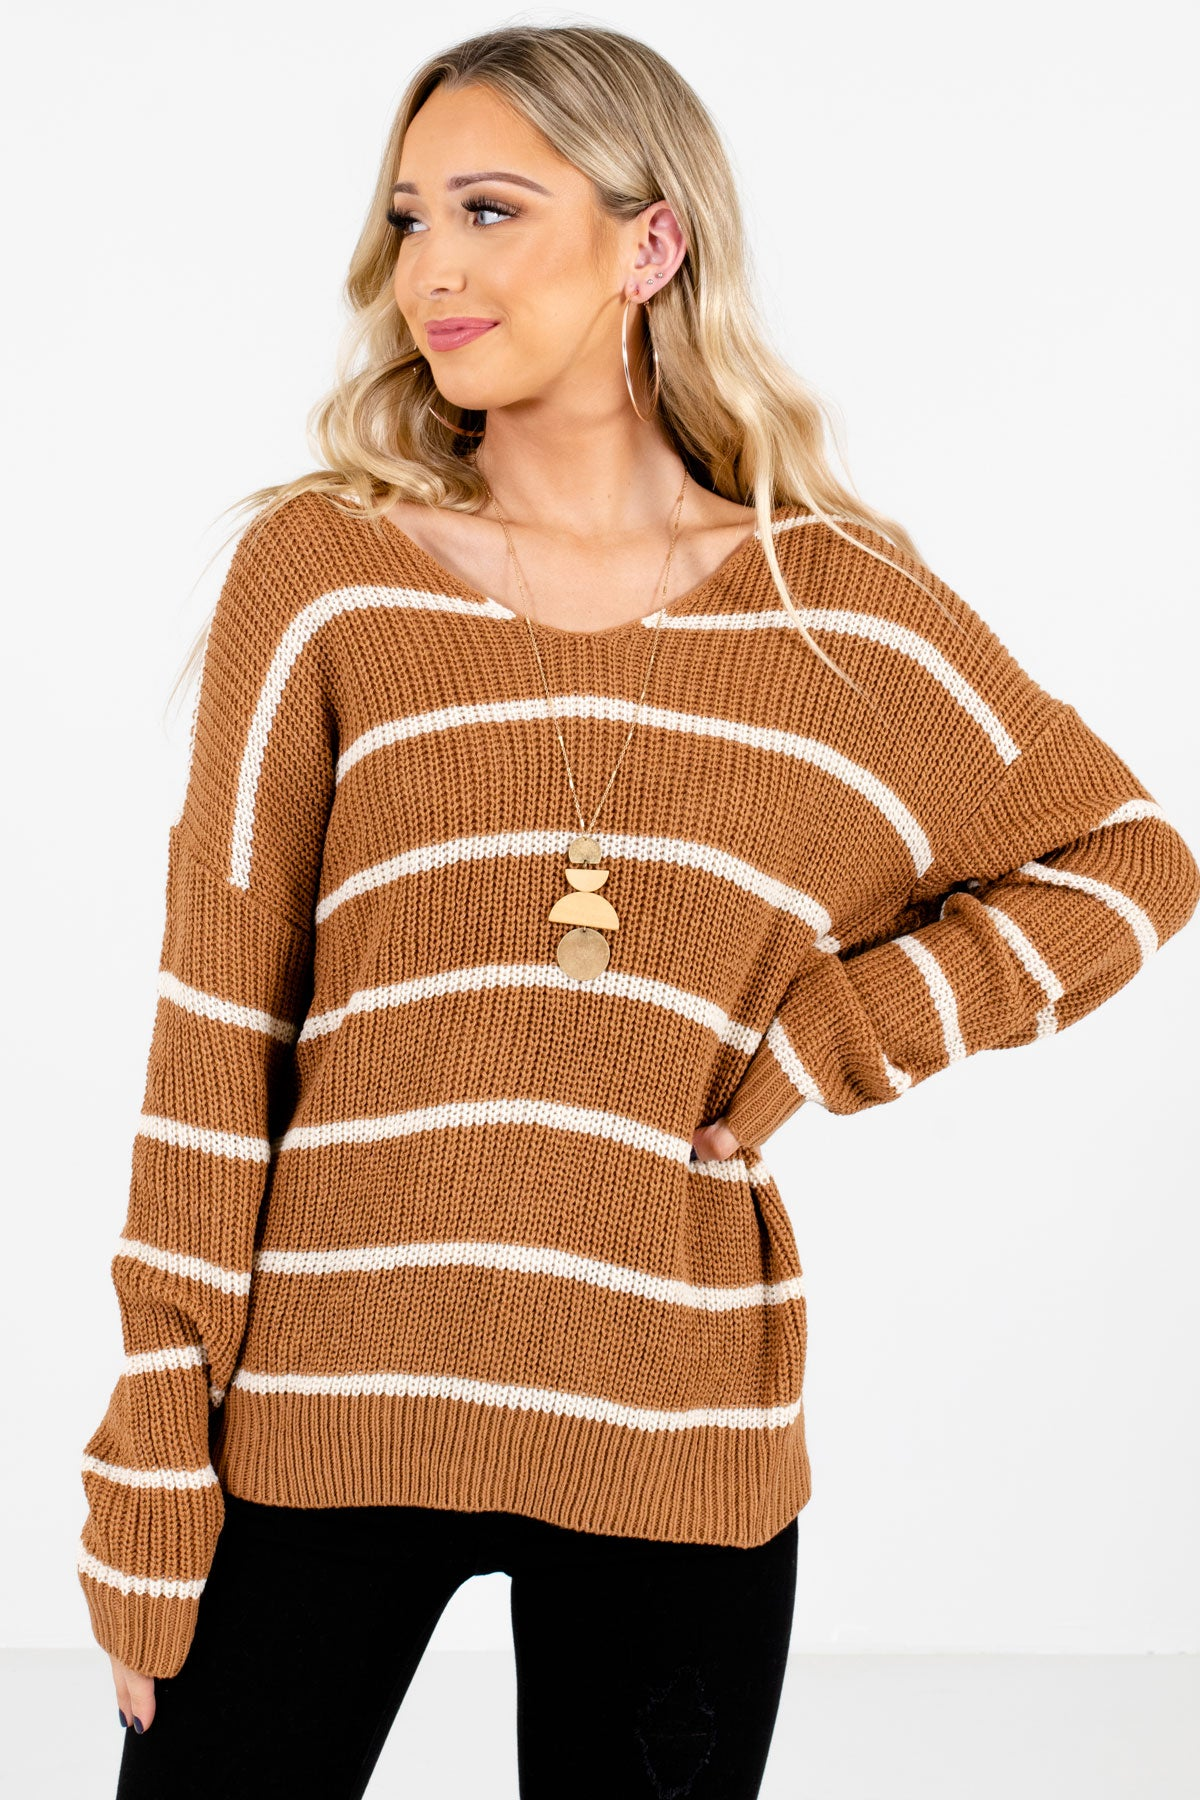 Brown and White Striped Boutique Sweaters for Women